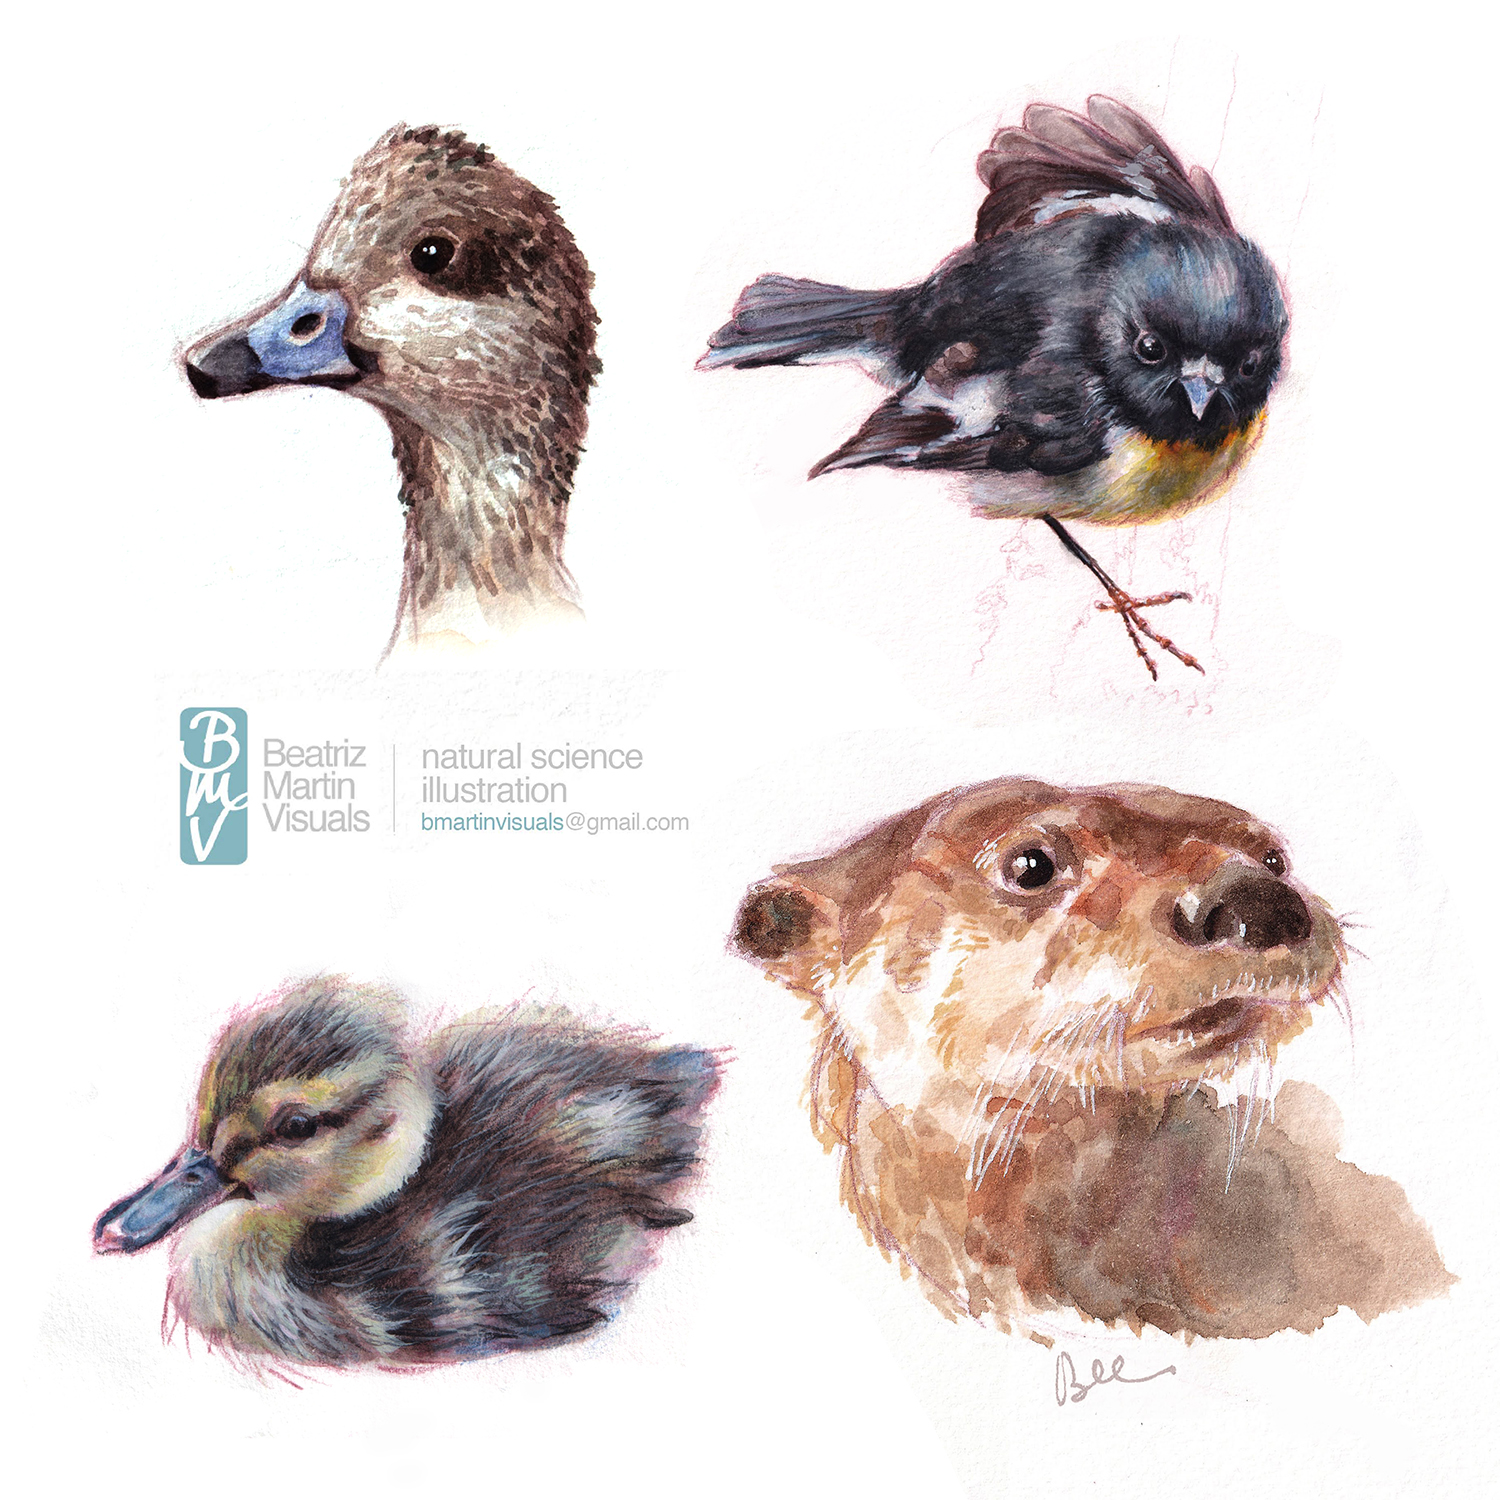 Portfolio sample from Beatriz Martin showing a duck head, a songbird, a duckling and an otter.